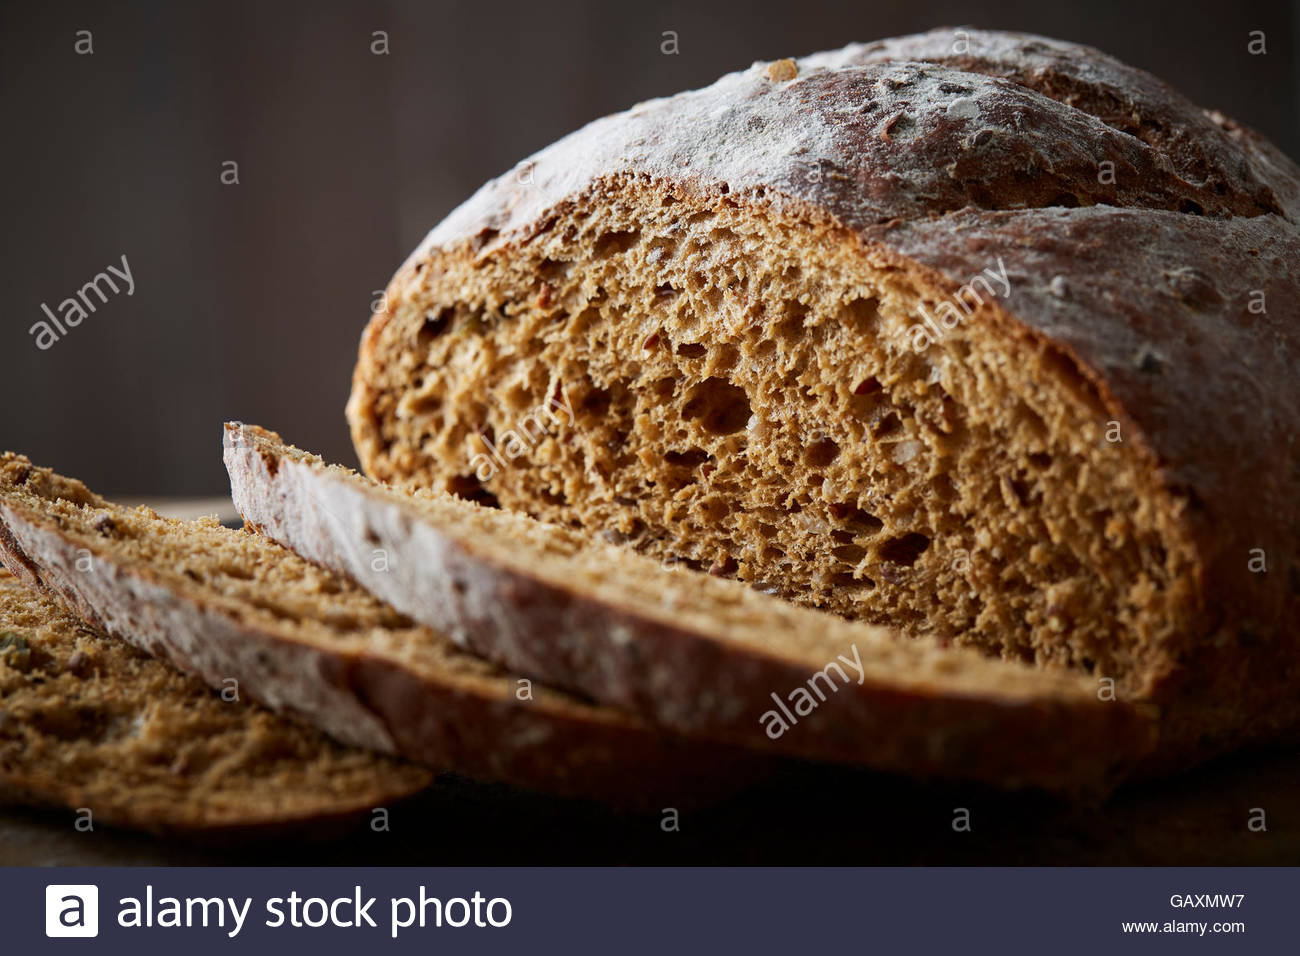 artisan brown loaf of bread on dark background - Stock Image